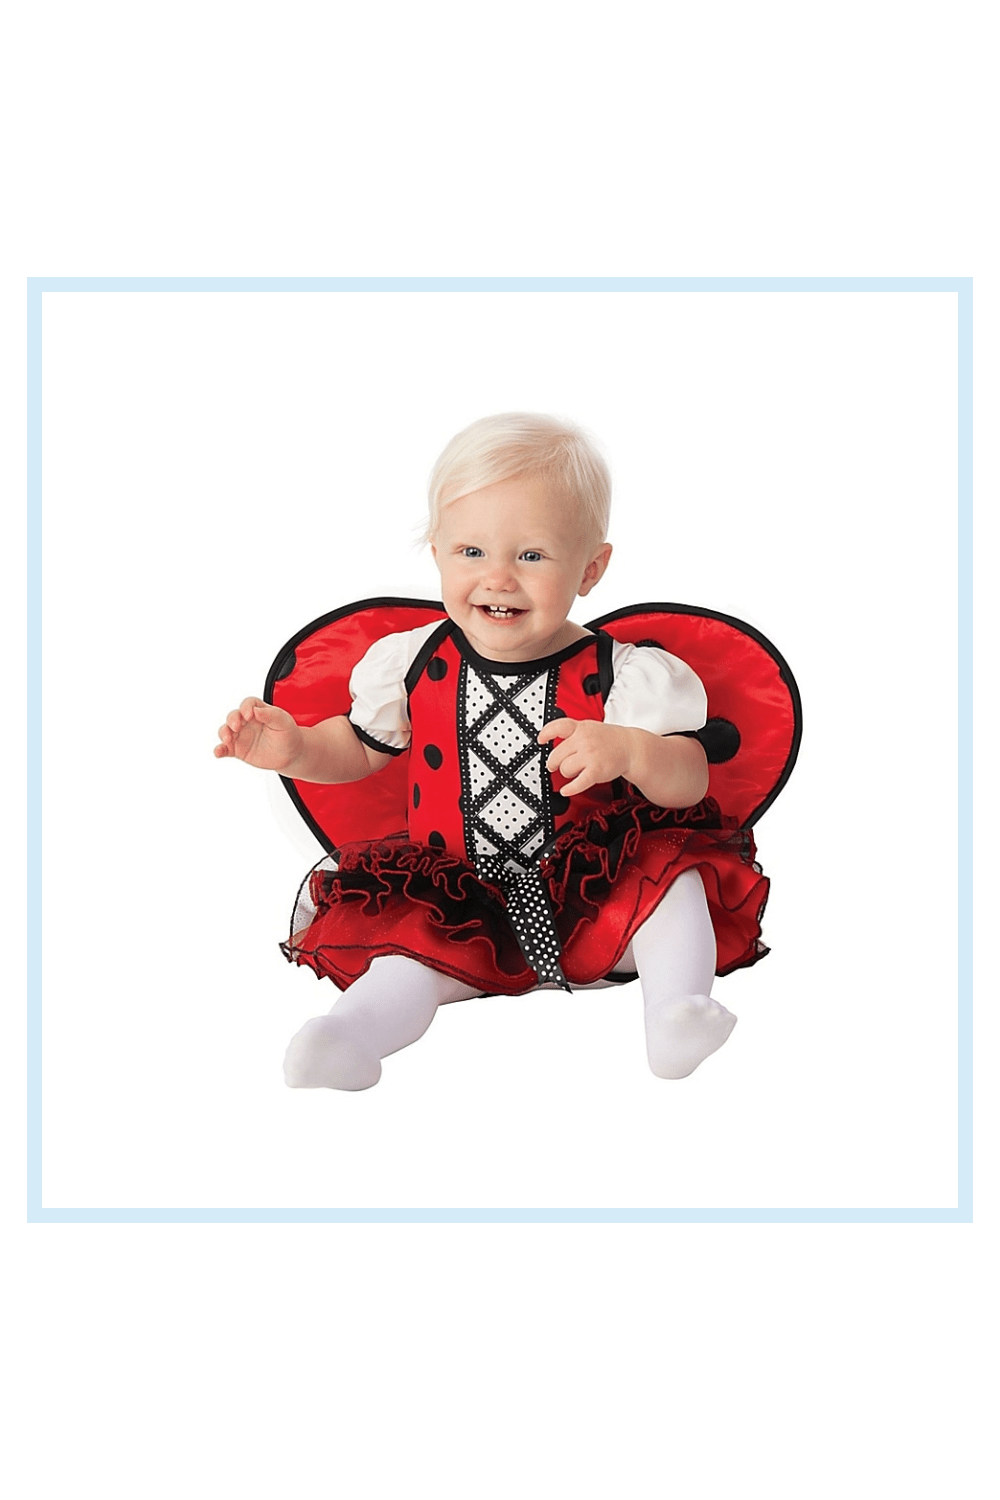 Ladybug Toddler Halloween Costume Red